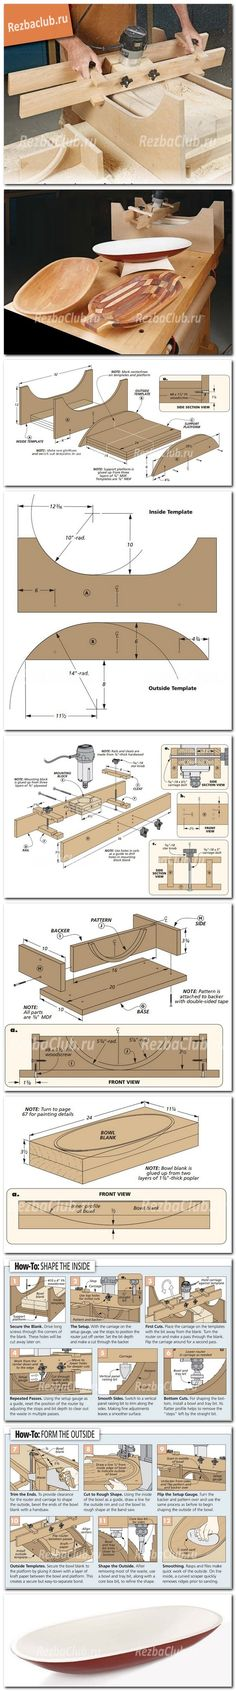 router jig plans for bowl making